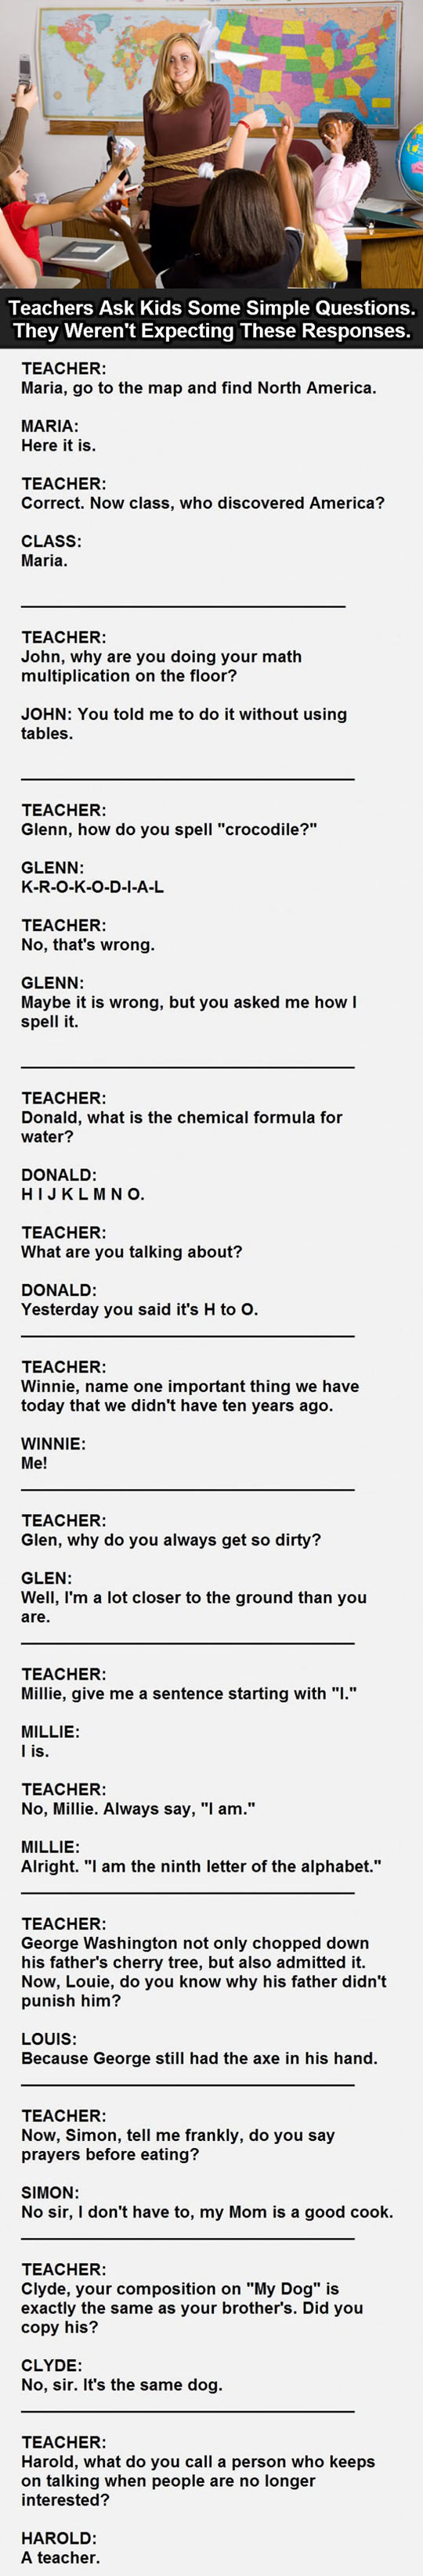 funny-teacher-students-kids-questions